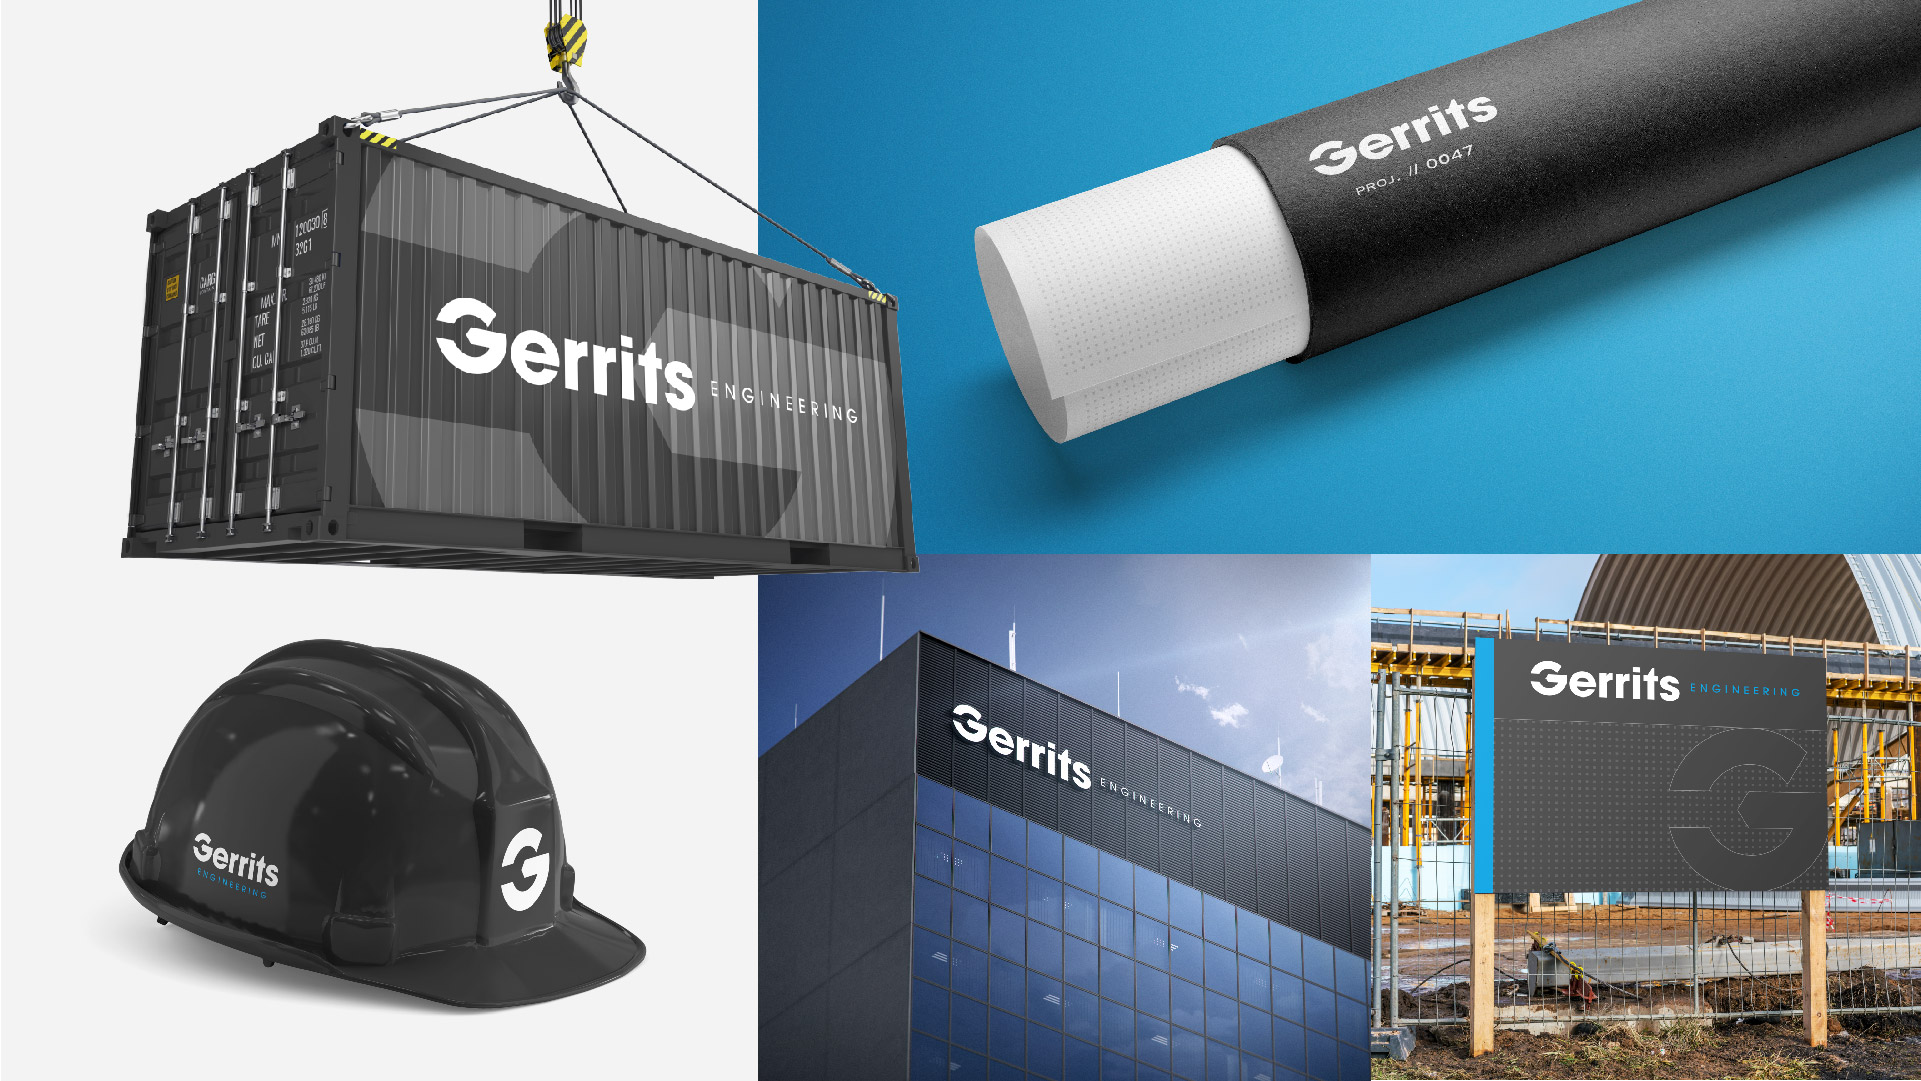 gerrits engineering storage container packing tube building signage contruction sign and hard hat